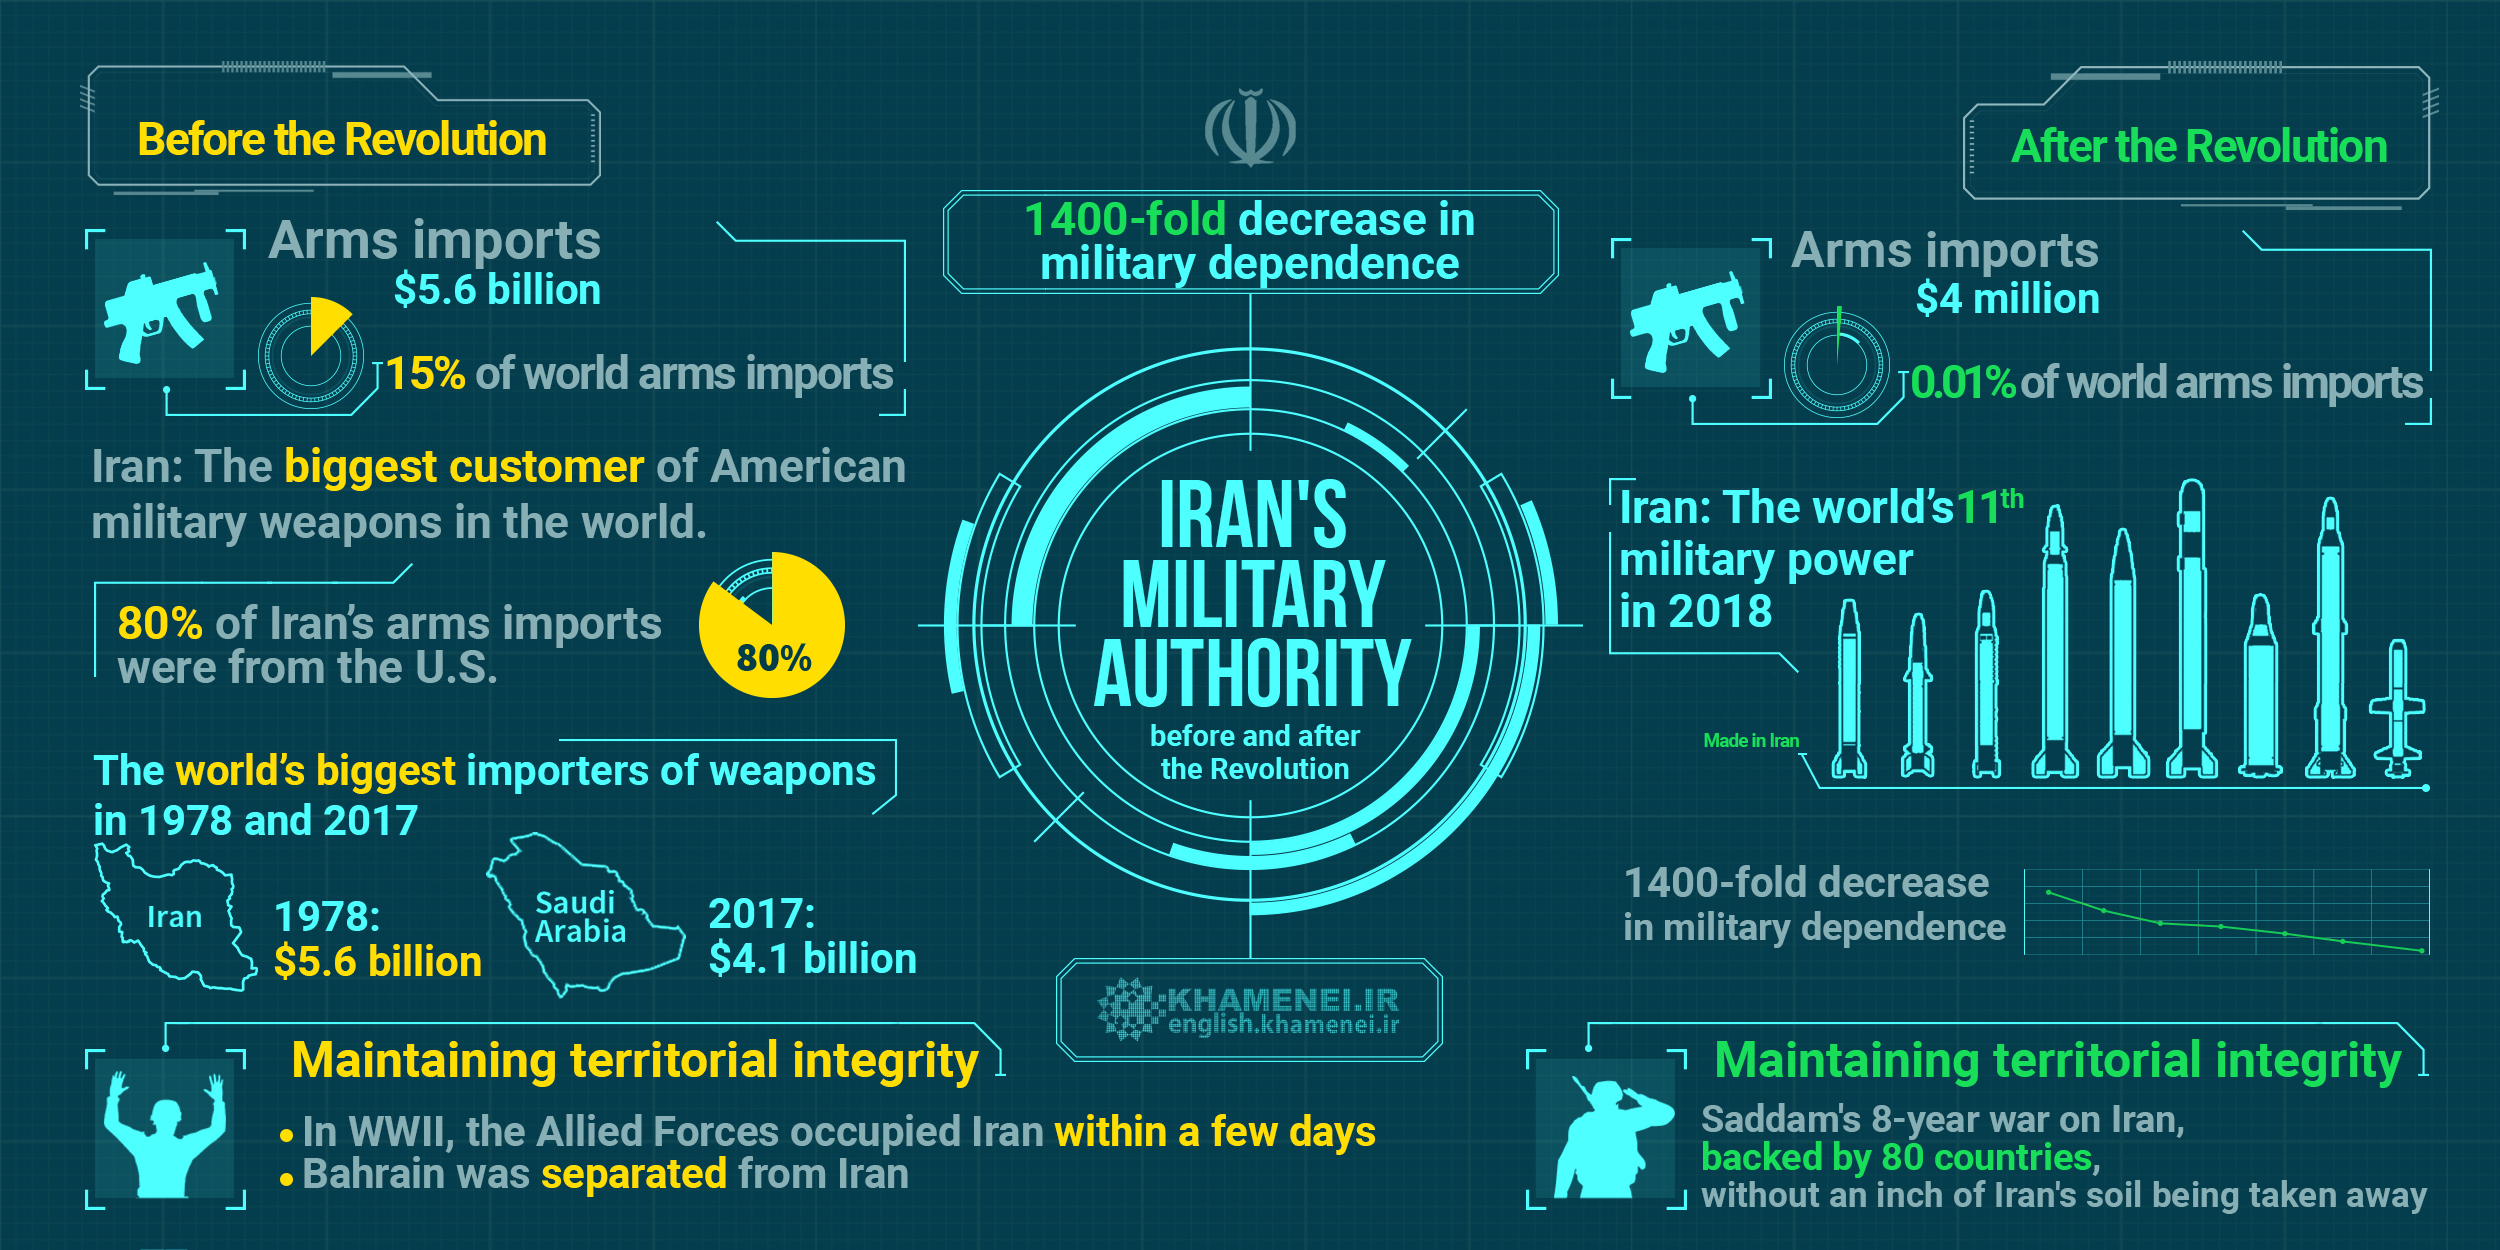 Iran's Military Authority Before and After the Revolution